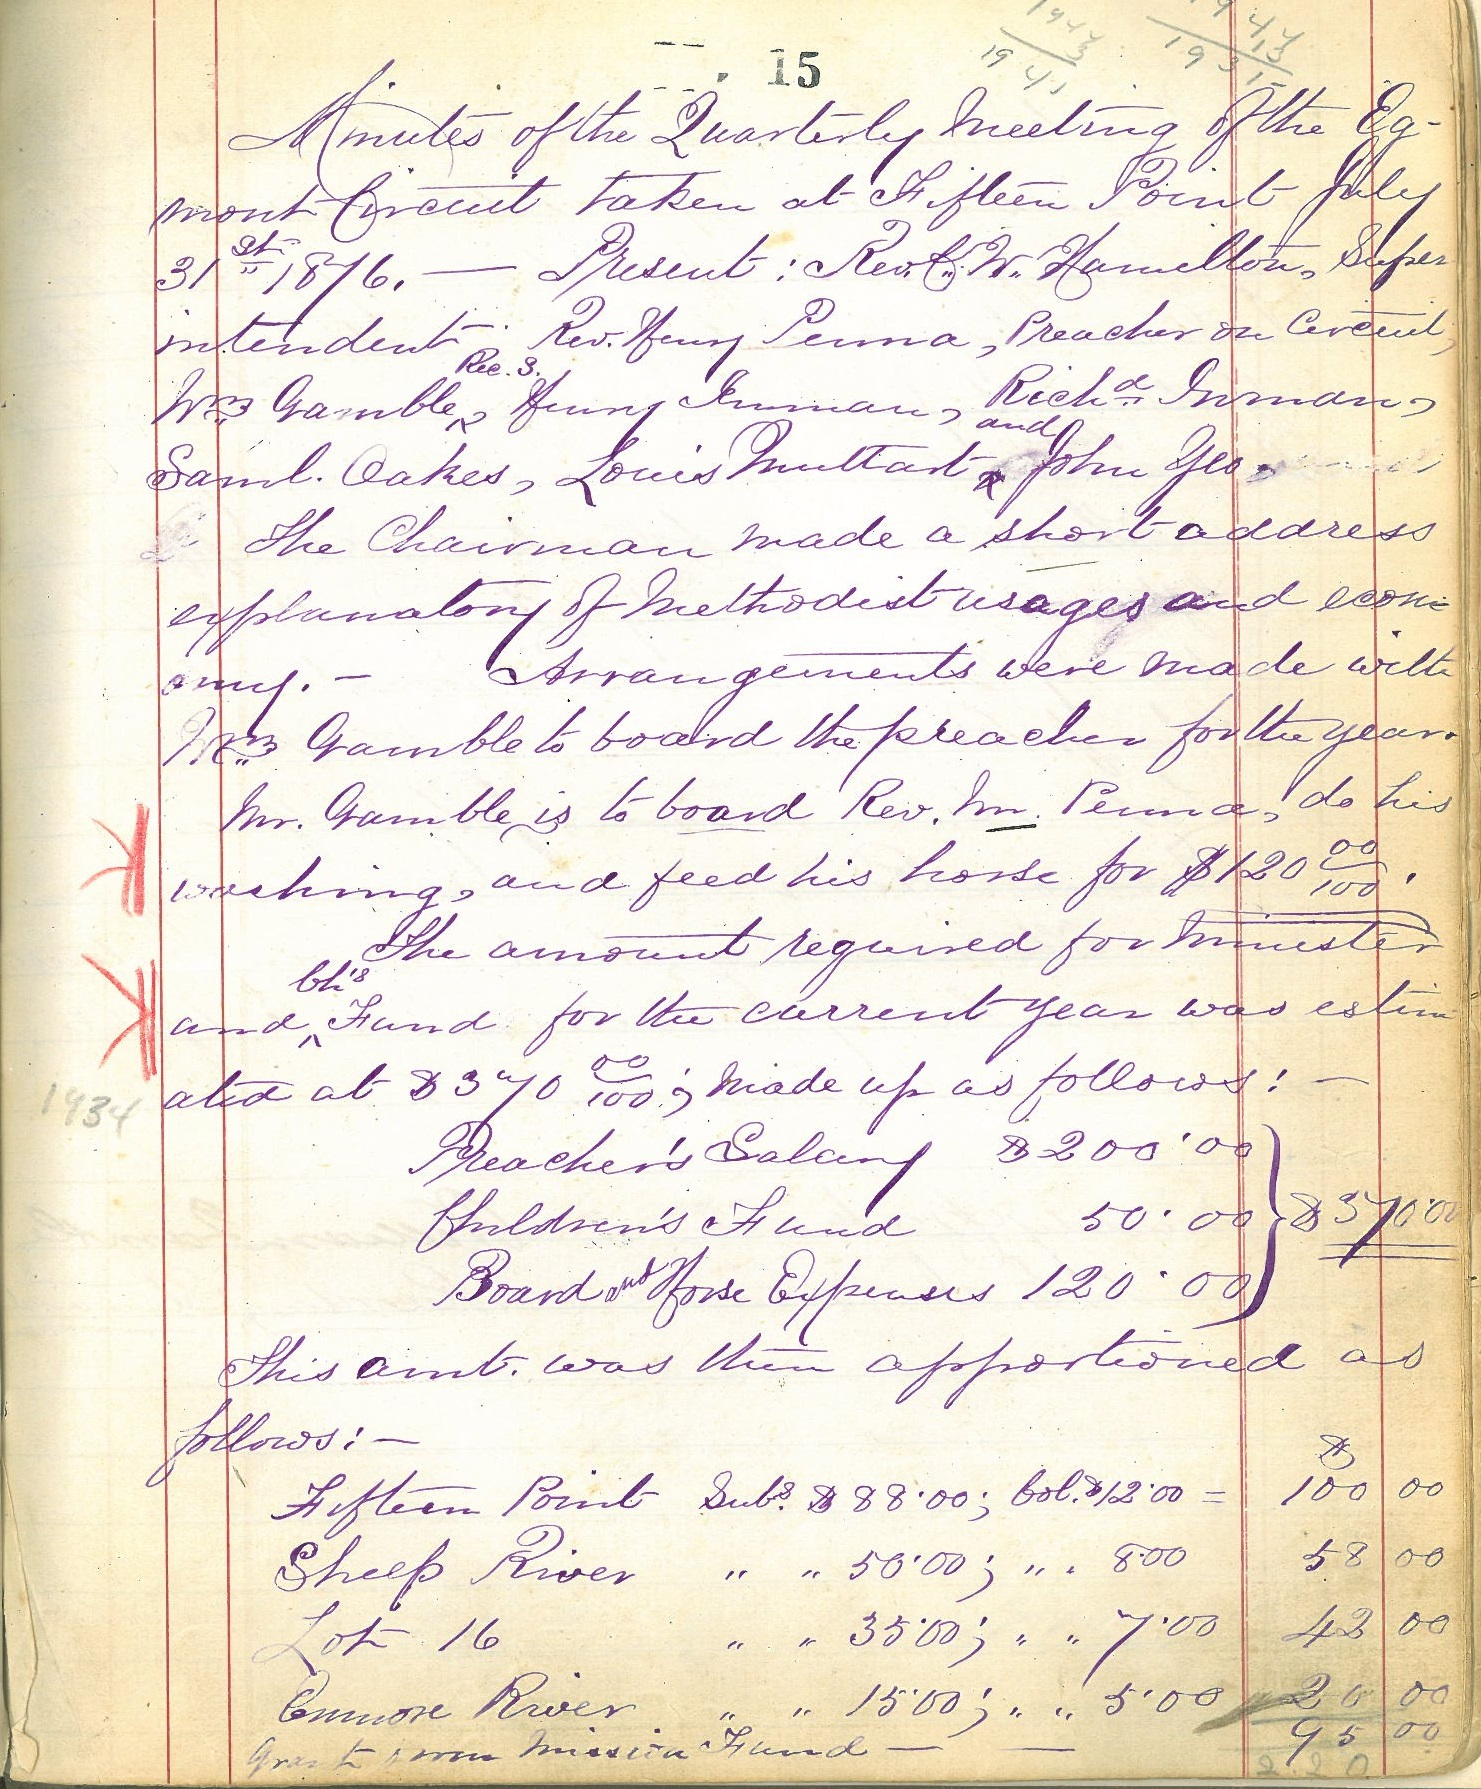 Bideford Pastoral Charge Records Listing